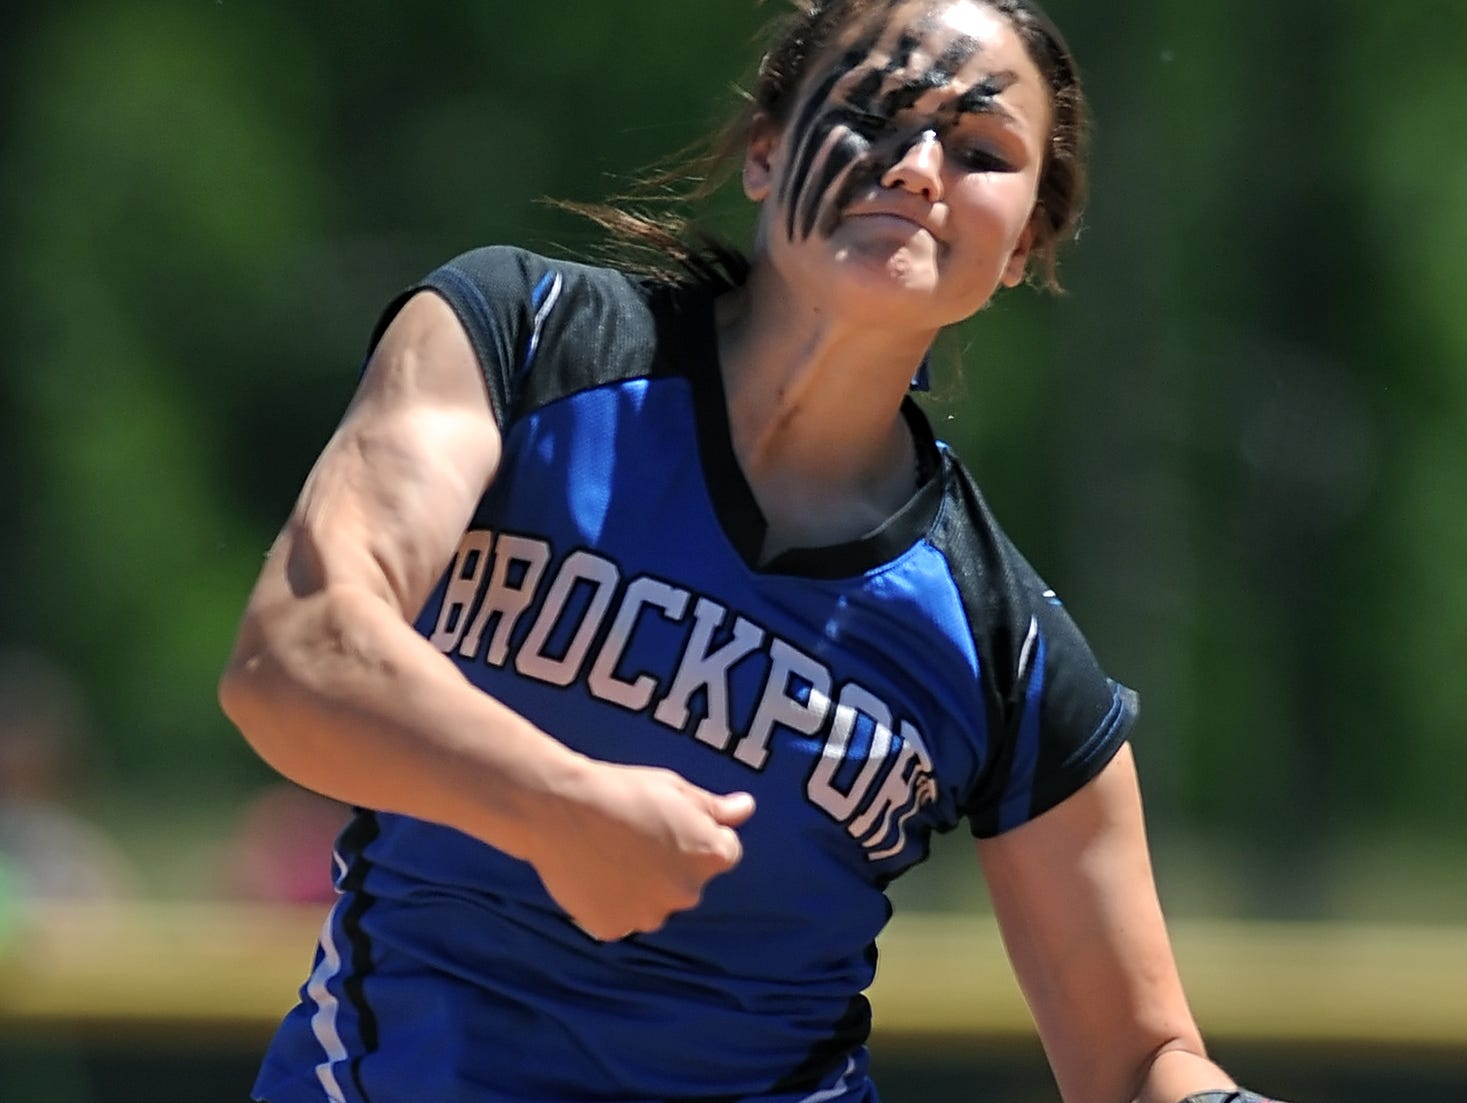 Brockport's Julia DiMartino pitches in the NYSPHSAA Class AA Western Regional on June 4, 2013.